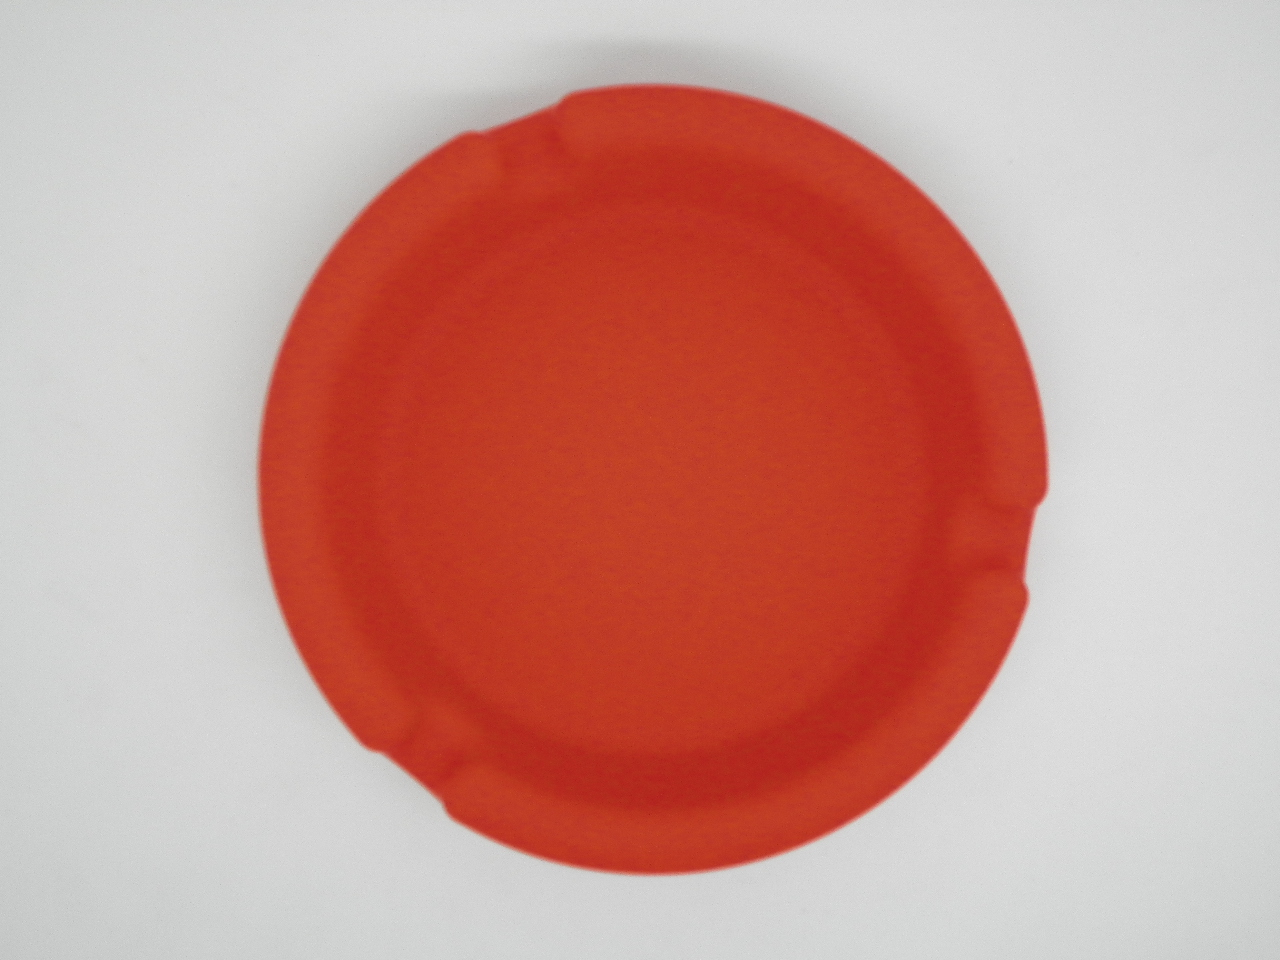 http://www.refinehksilicone.cn/data/images/product/20180417101617_893.JPG